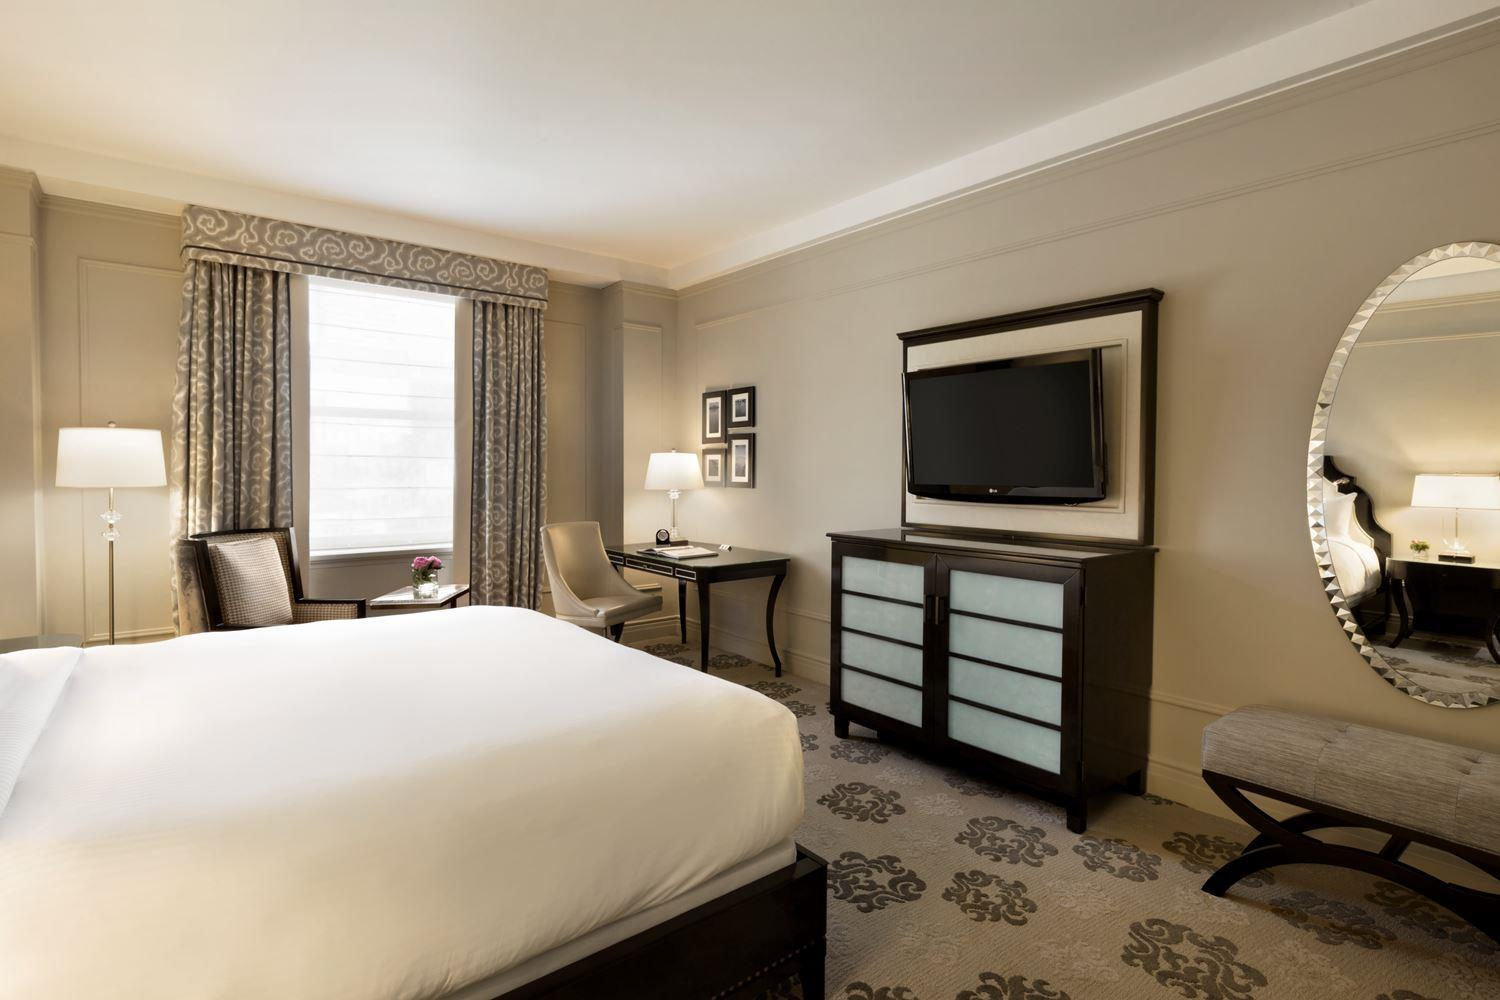 Top trending hotels in Vancouver (BC):